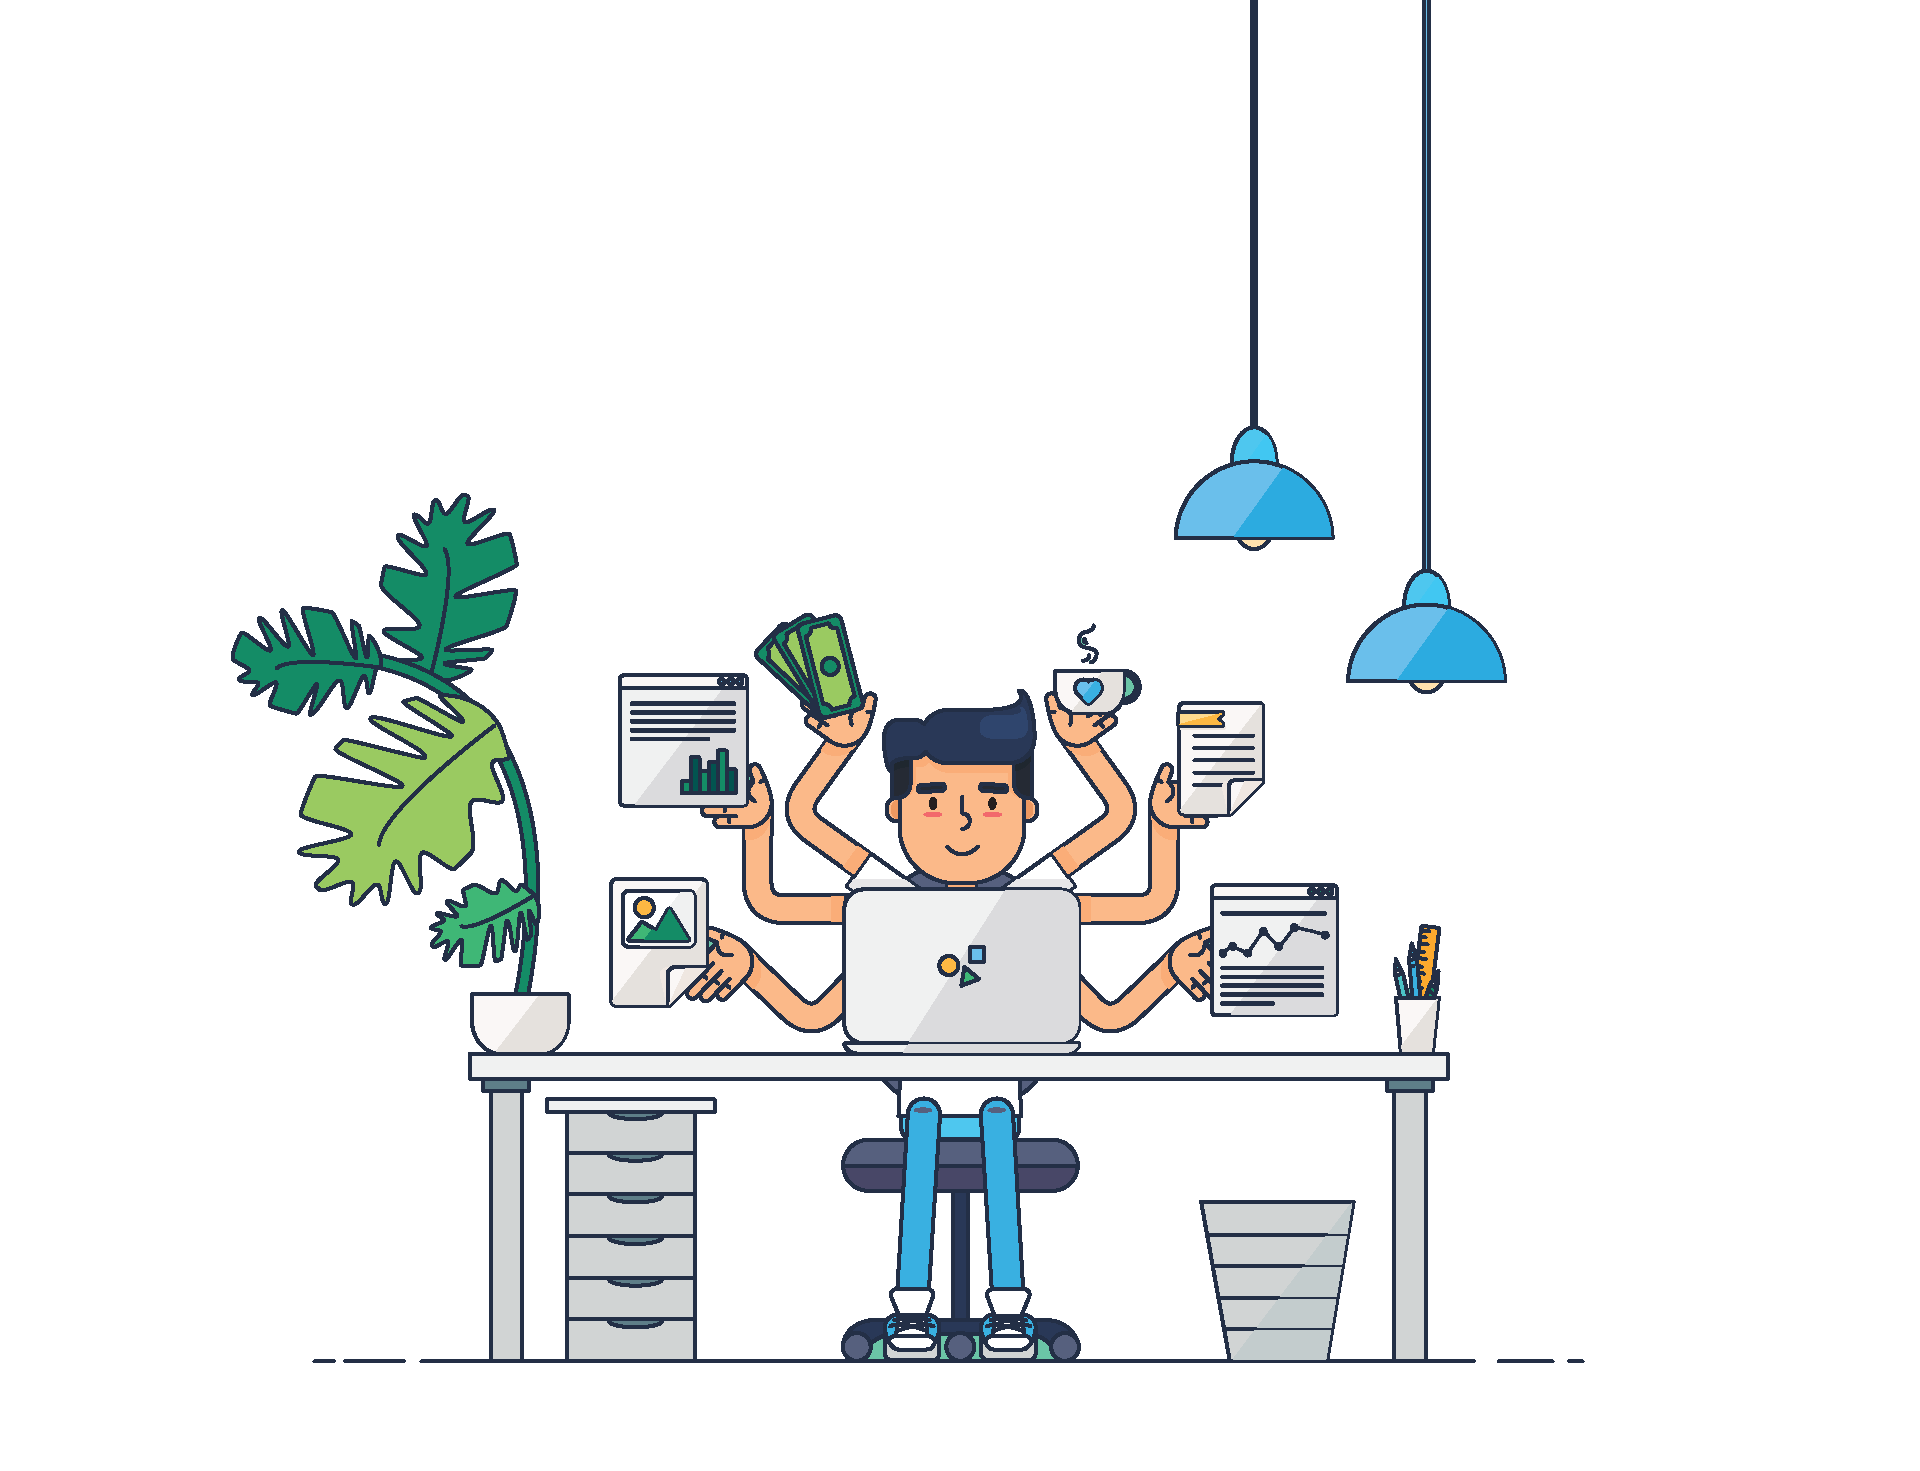 An illustration image that shows a user at his desk making use of the Virtual landlines platform to collaborate with his coworkers and clients.